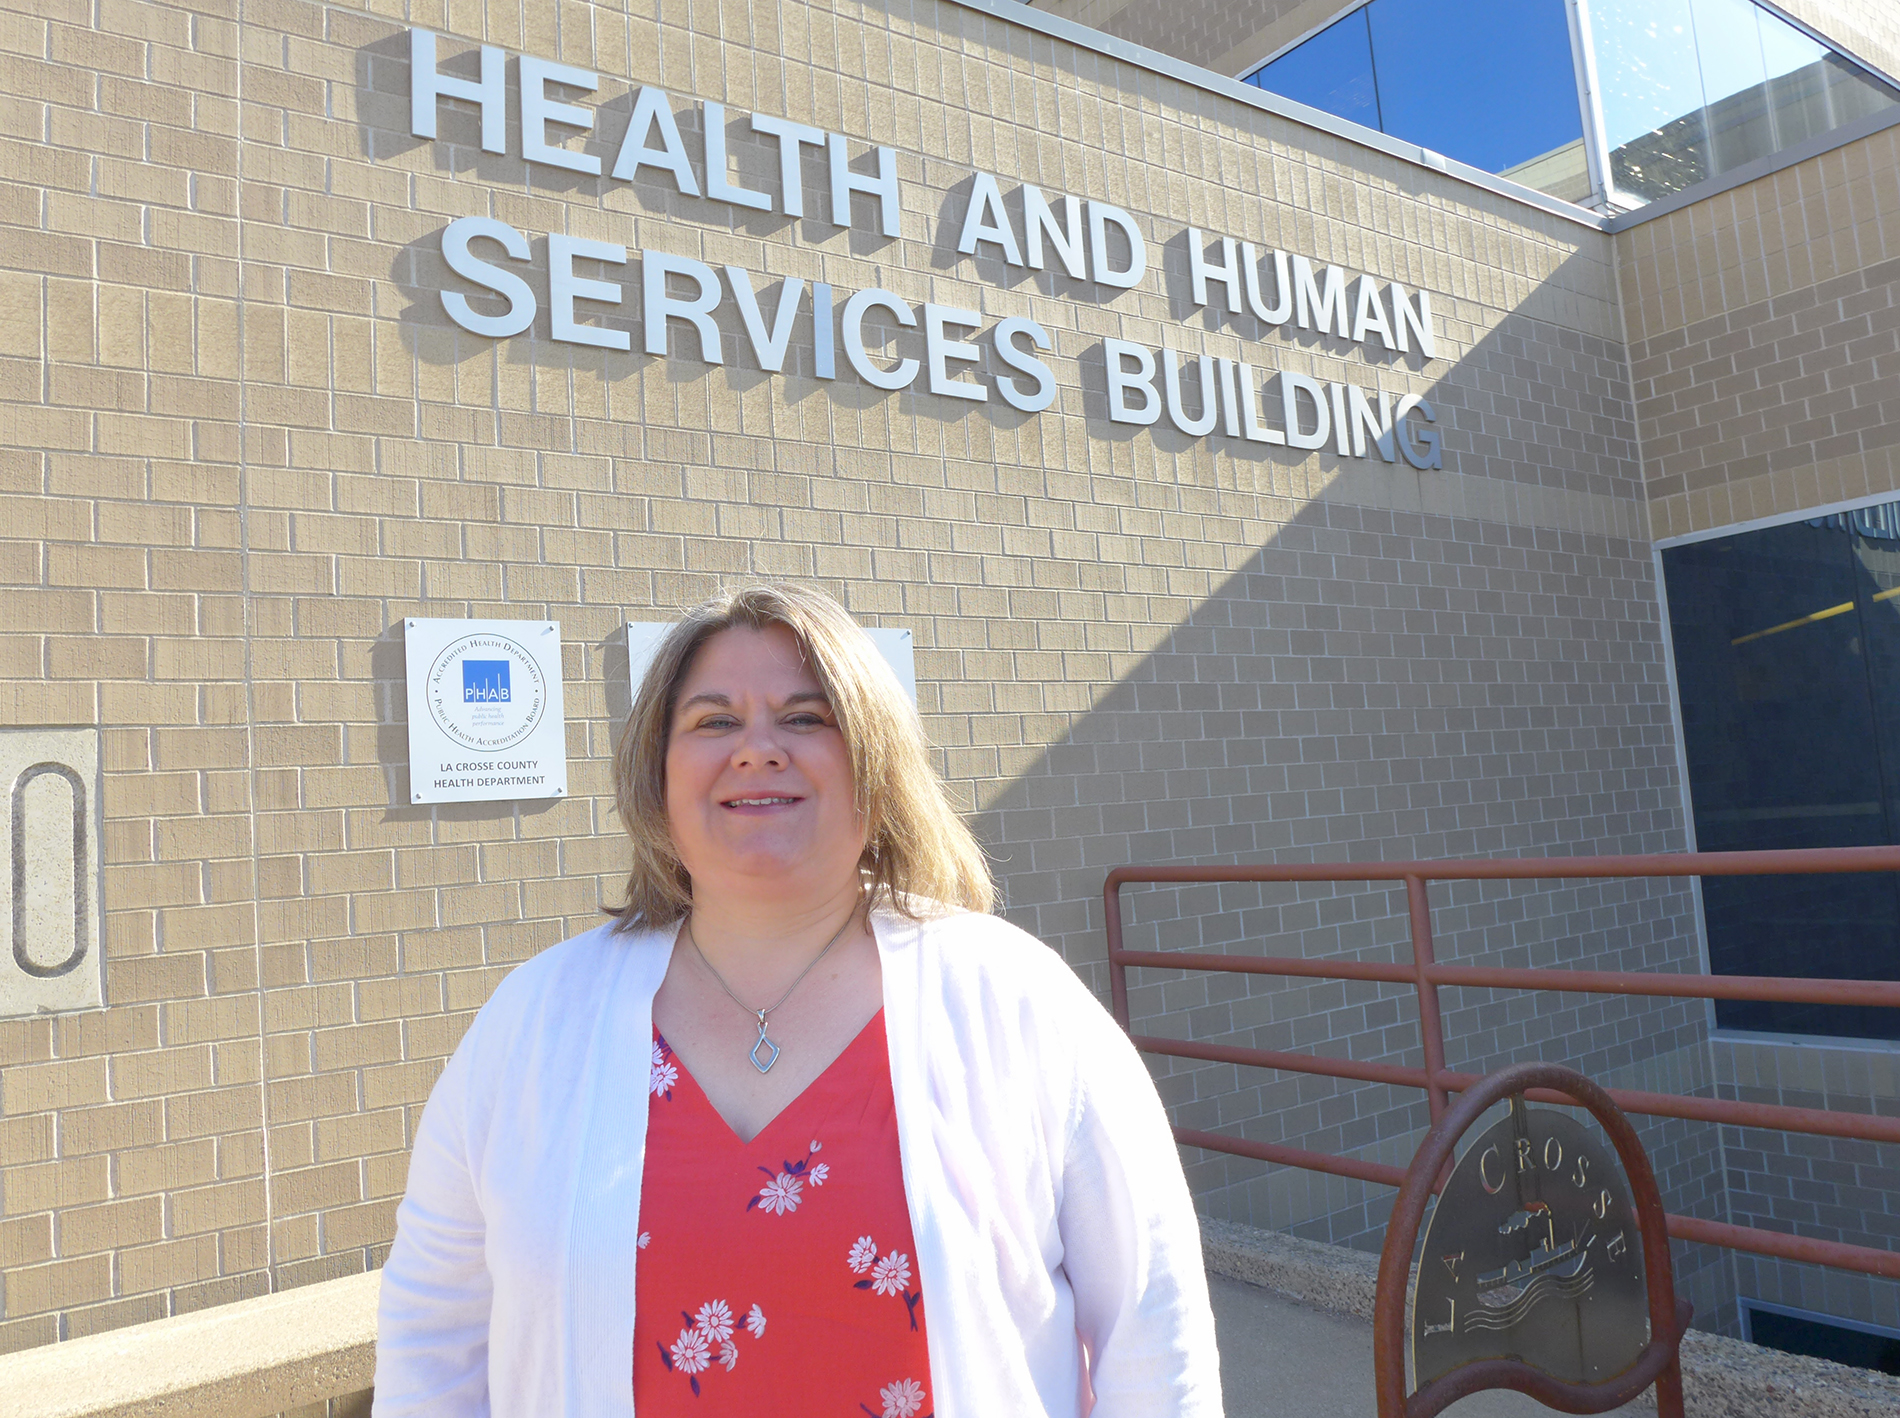 Lila Barlow, supervisor of La Crosse County's Foster Care program, said 80 to 85 percent of cases in the foster care system involve alcohol or drug problems. Photo by Hope Kirwan/WPR.